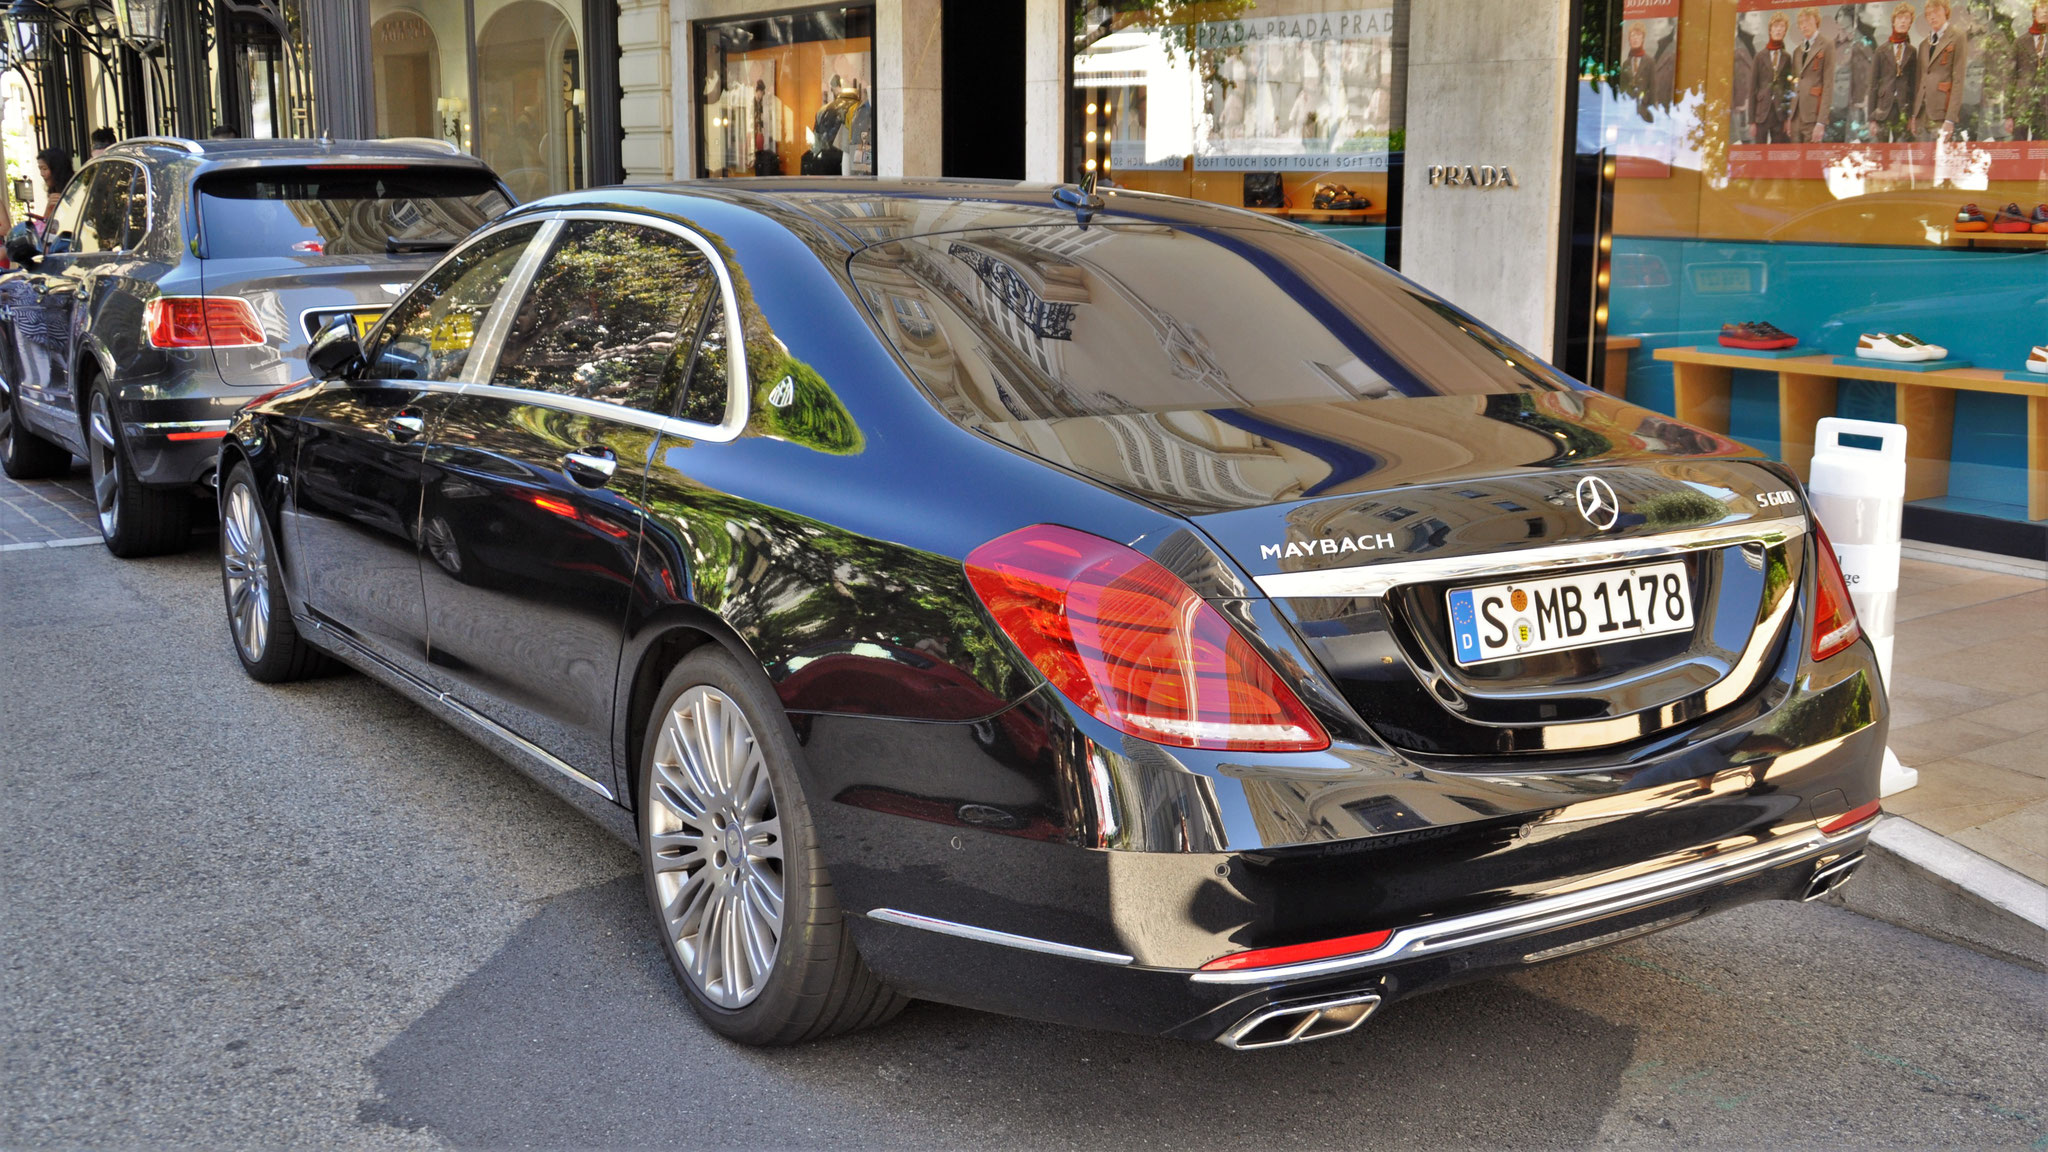 Mercedes Maybach S600 - S-MB-1178